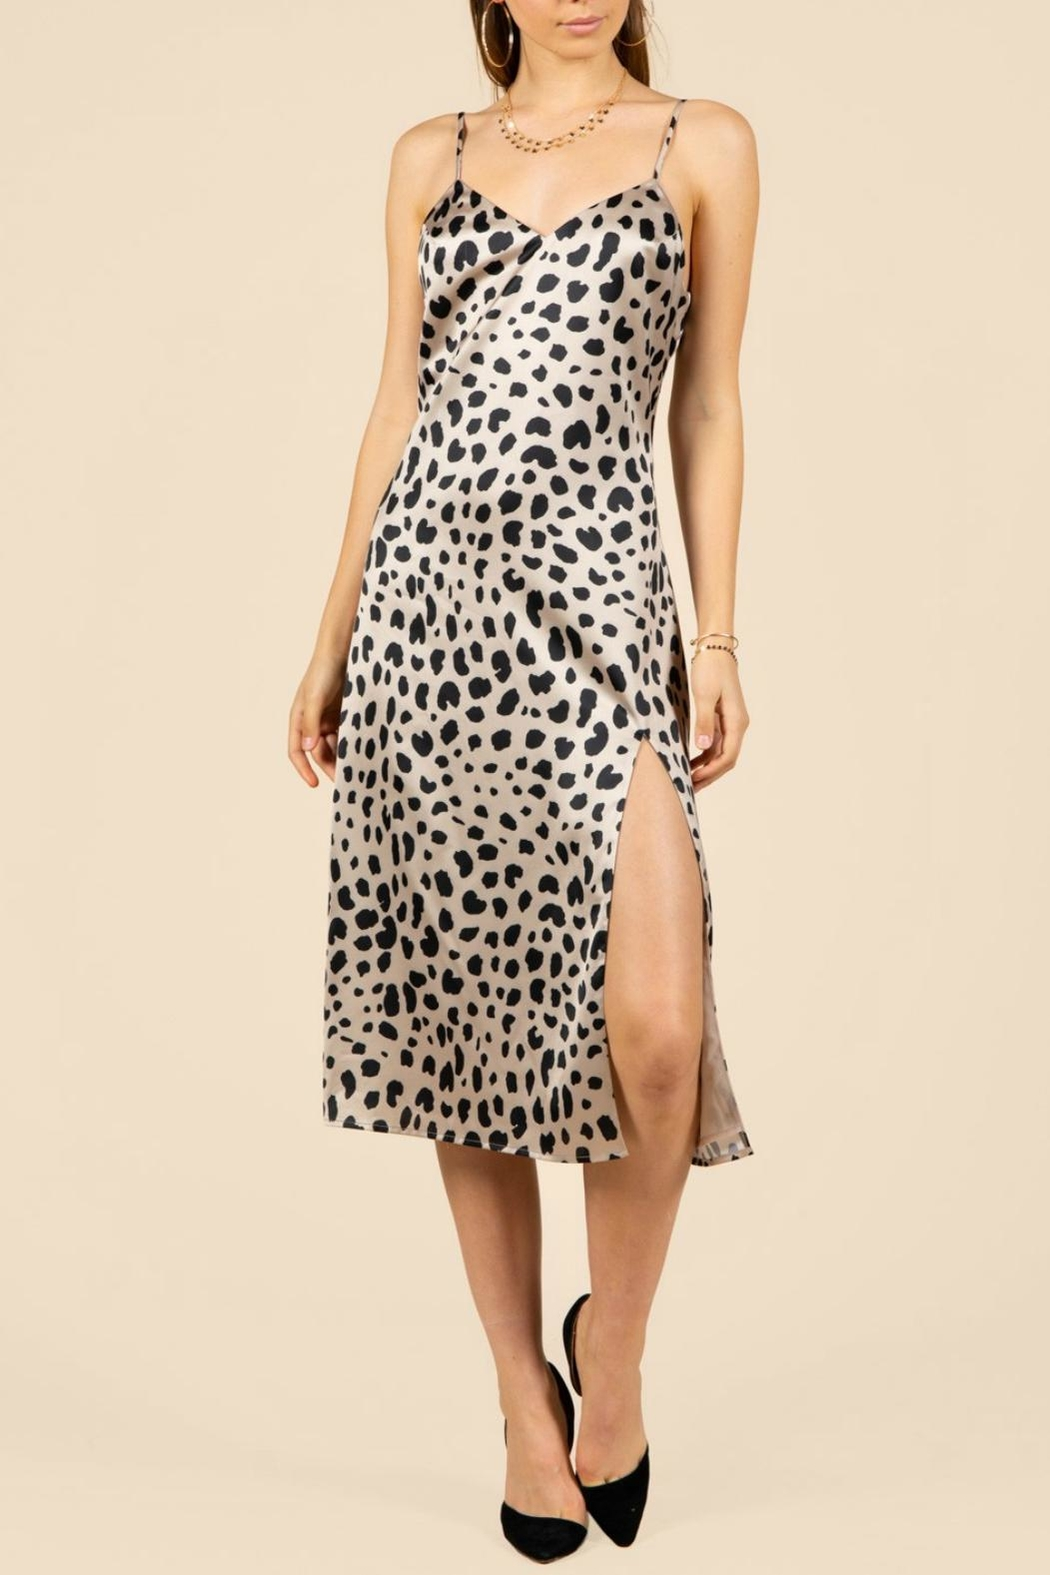 Pretty Little Things Leopard Slip Dress - Main Image